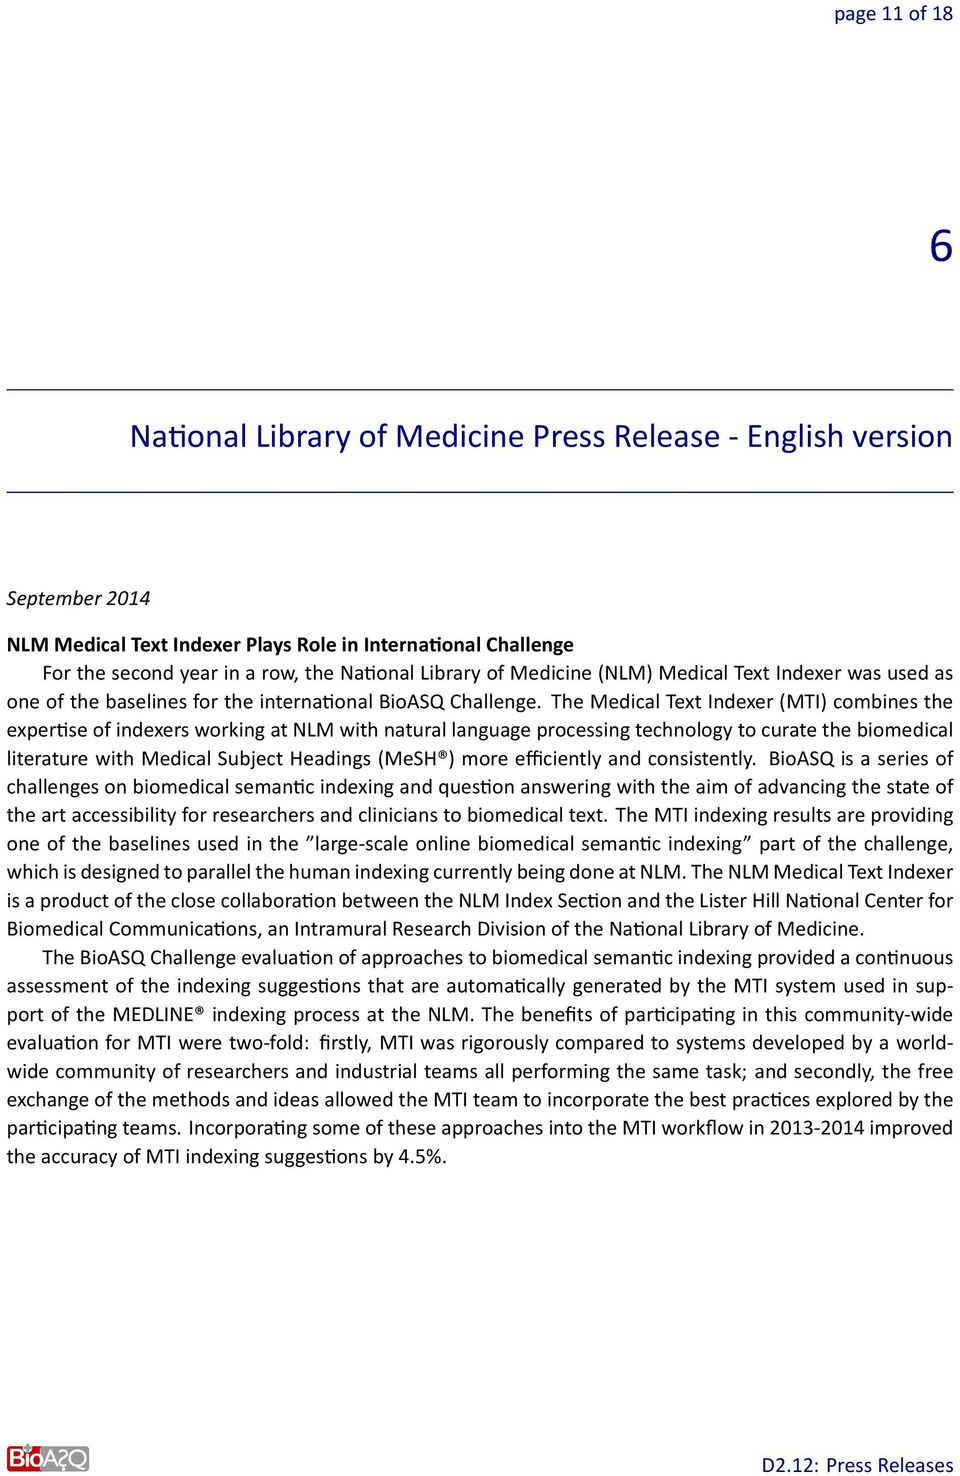 The Medical Text Indexer (MTI) combines the exper se of indexers working at NLM with natural language processing technology to curate the biomedical literature with Medical Subject Headings (MeSH )